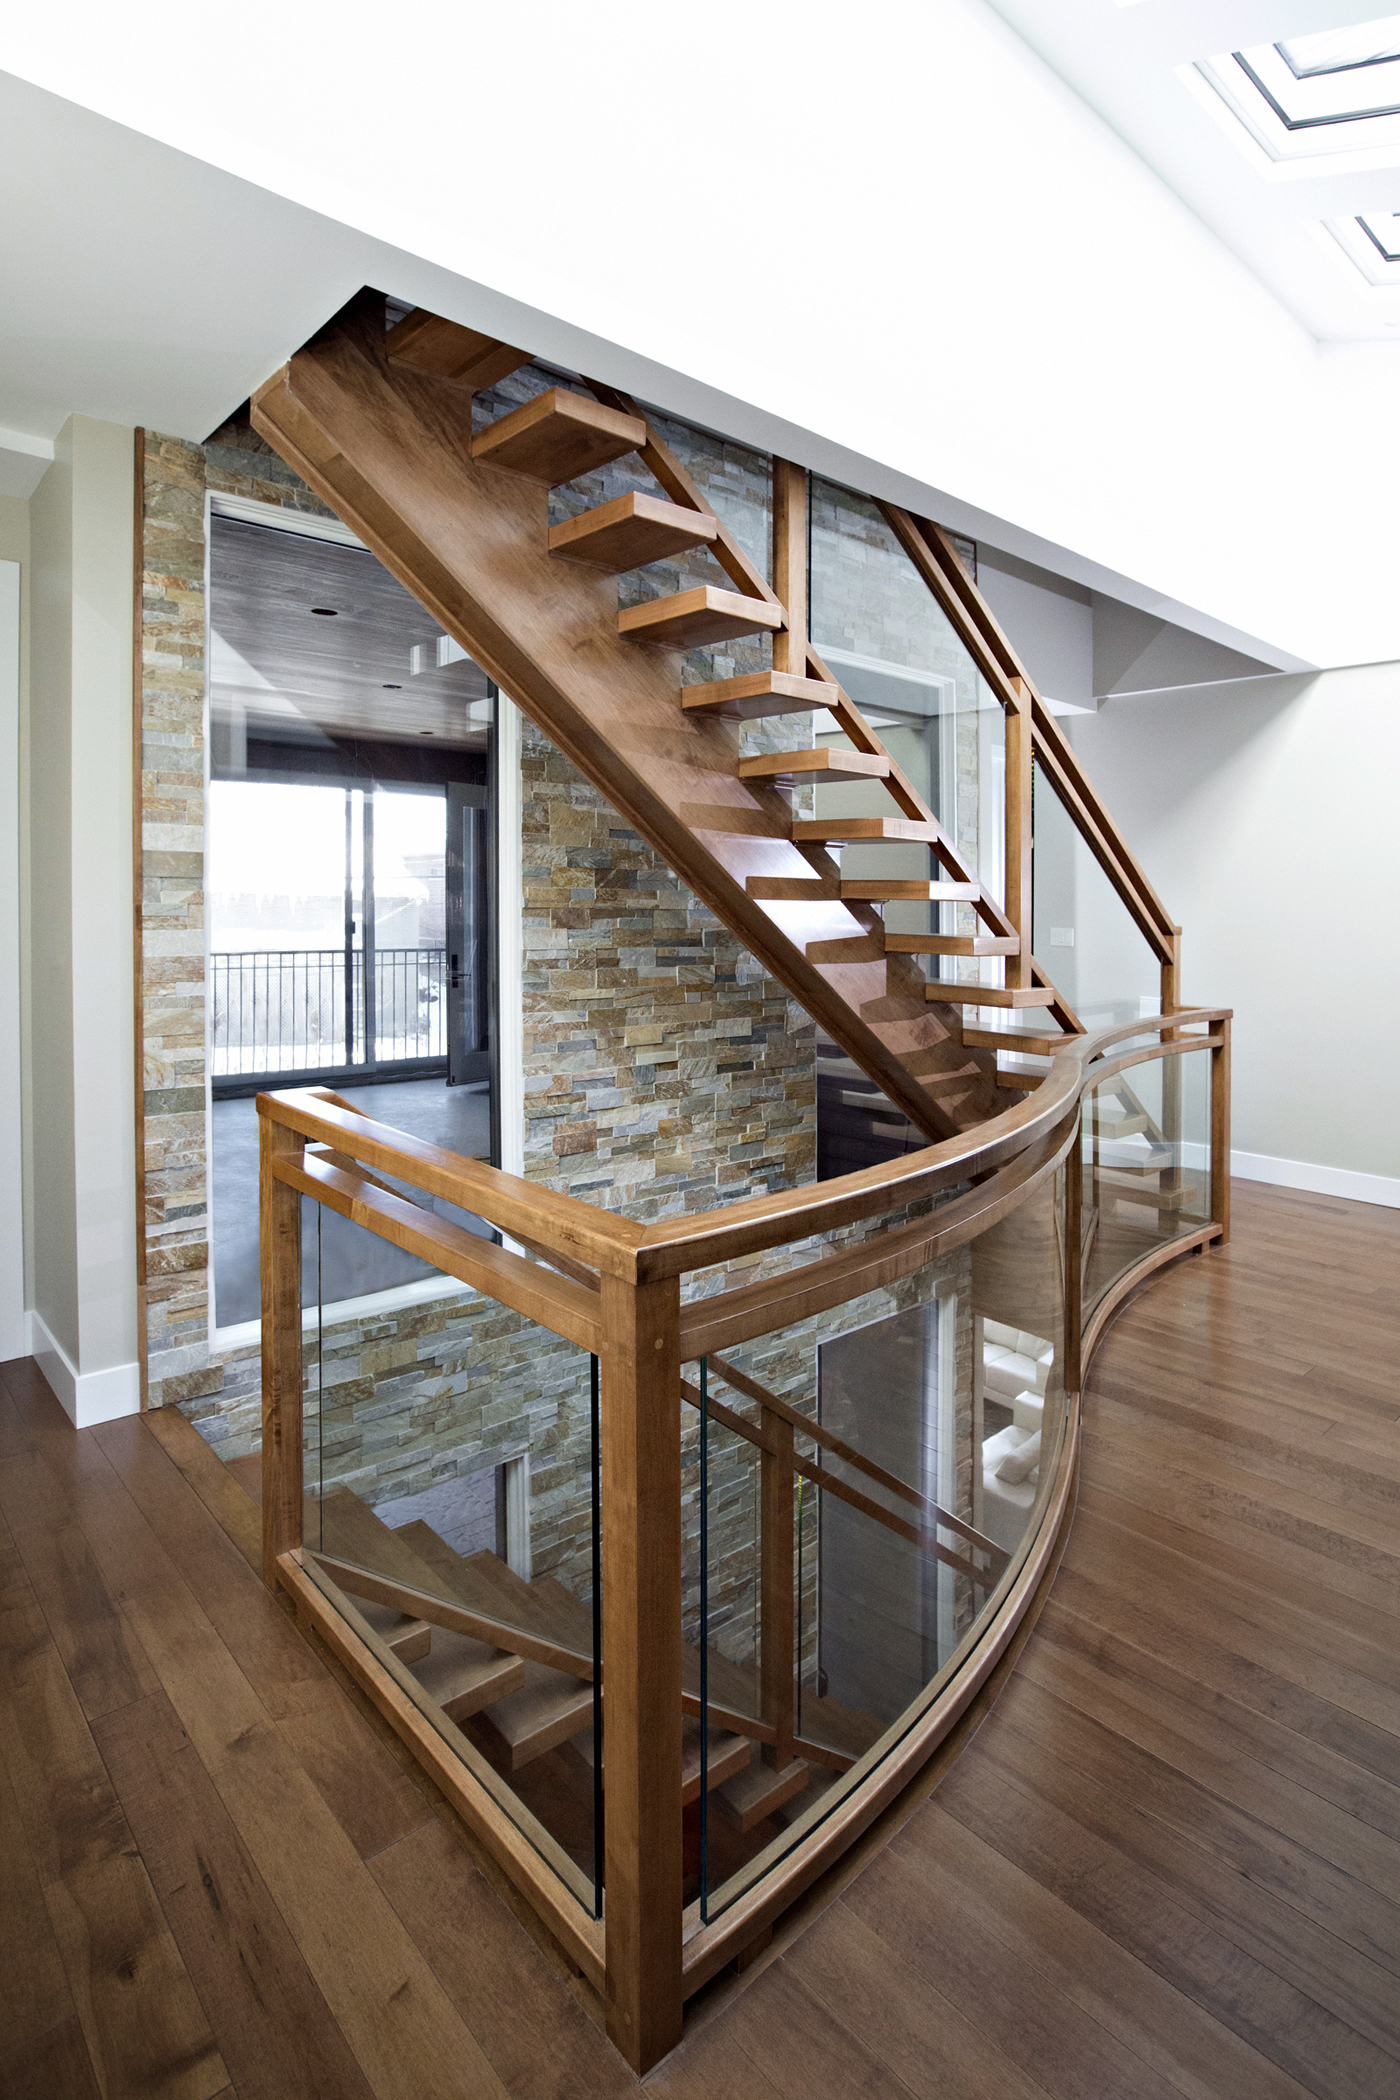 Staight Staircase with Glass #155